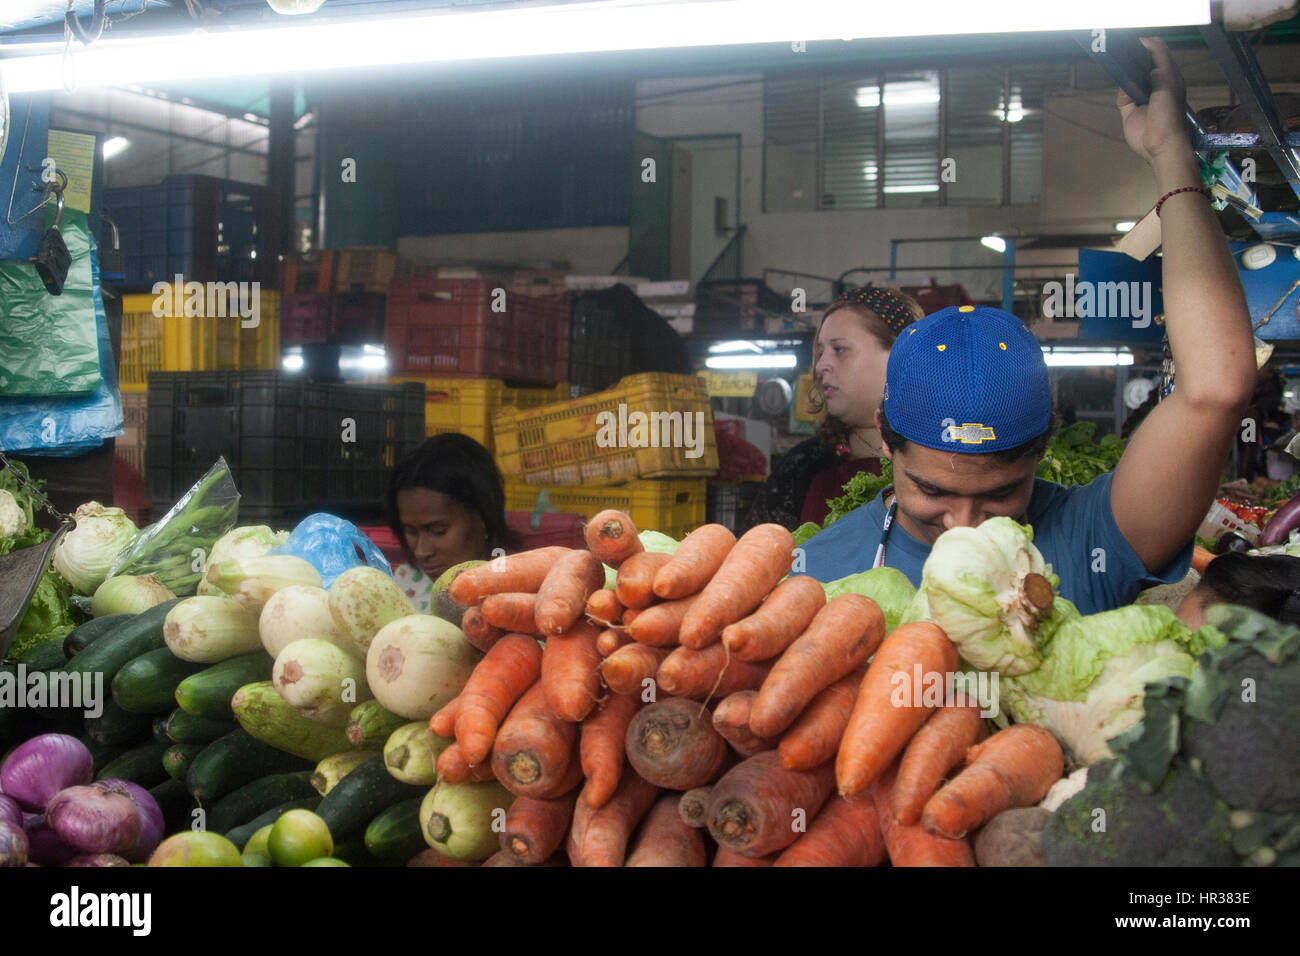 Caracas, Dtto Capital / Venezuela - 04-02-2012 : Man selling some fruits and vegetables in a famous popular market Stock Photo